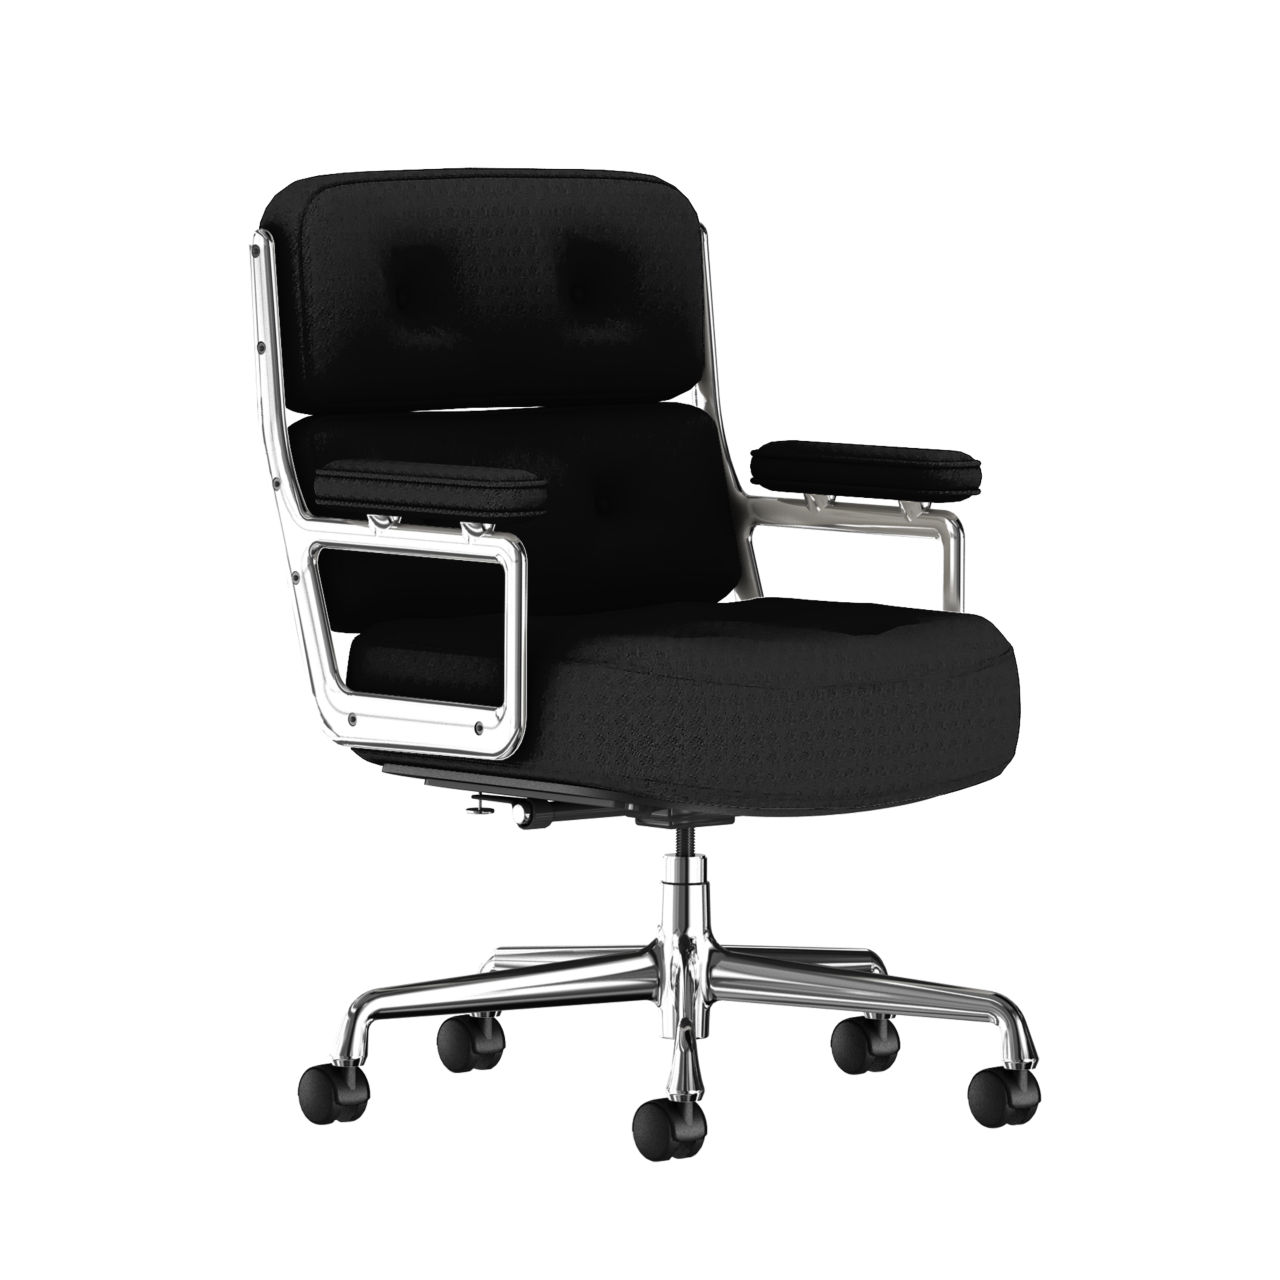 Eames Executive Work Chair Fabric in Black by Herman Miller